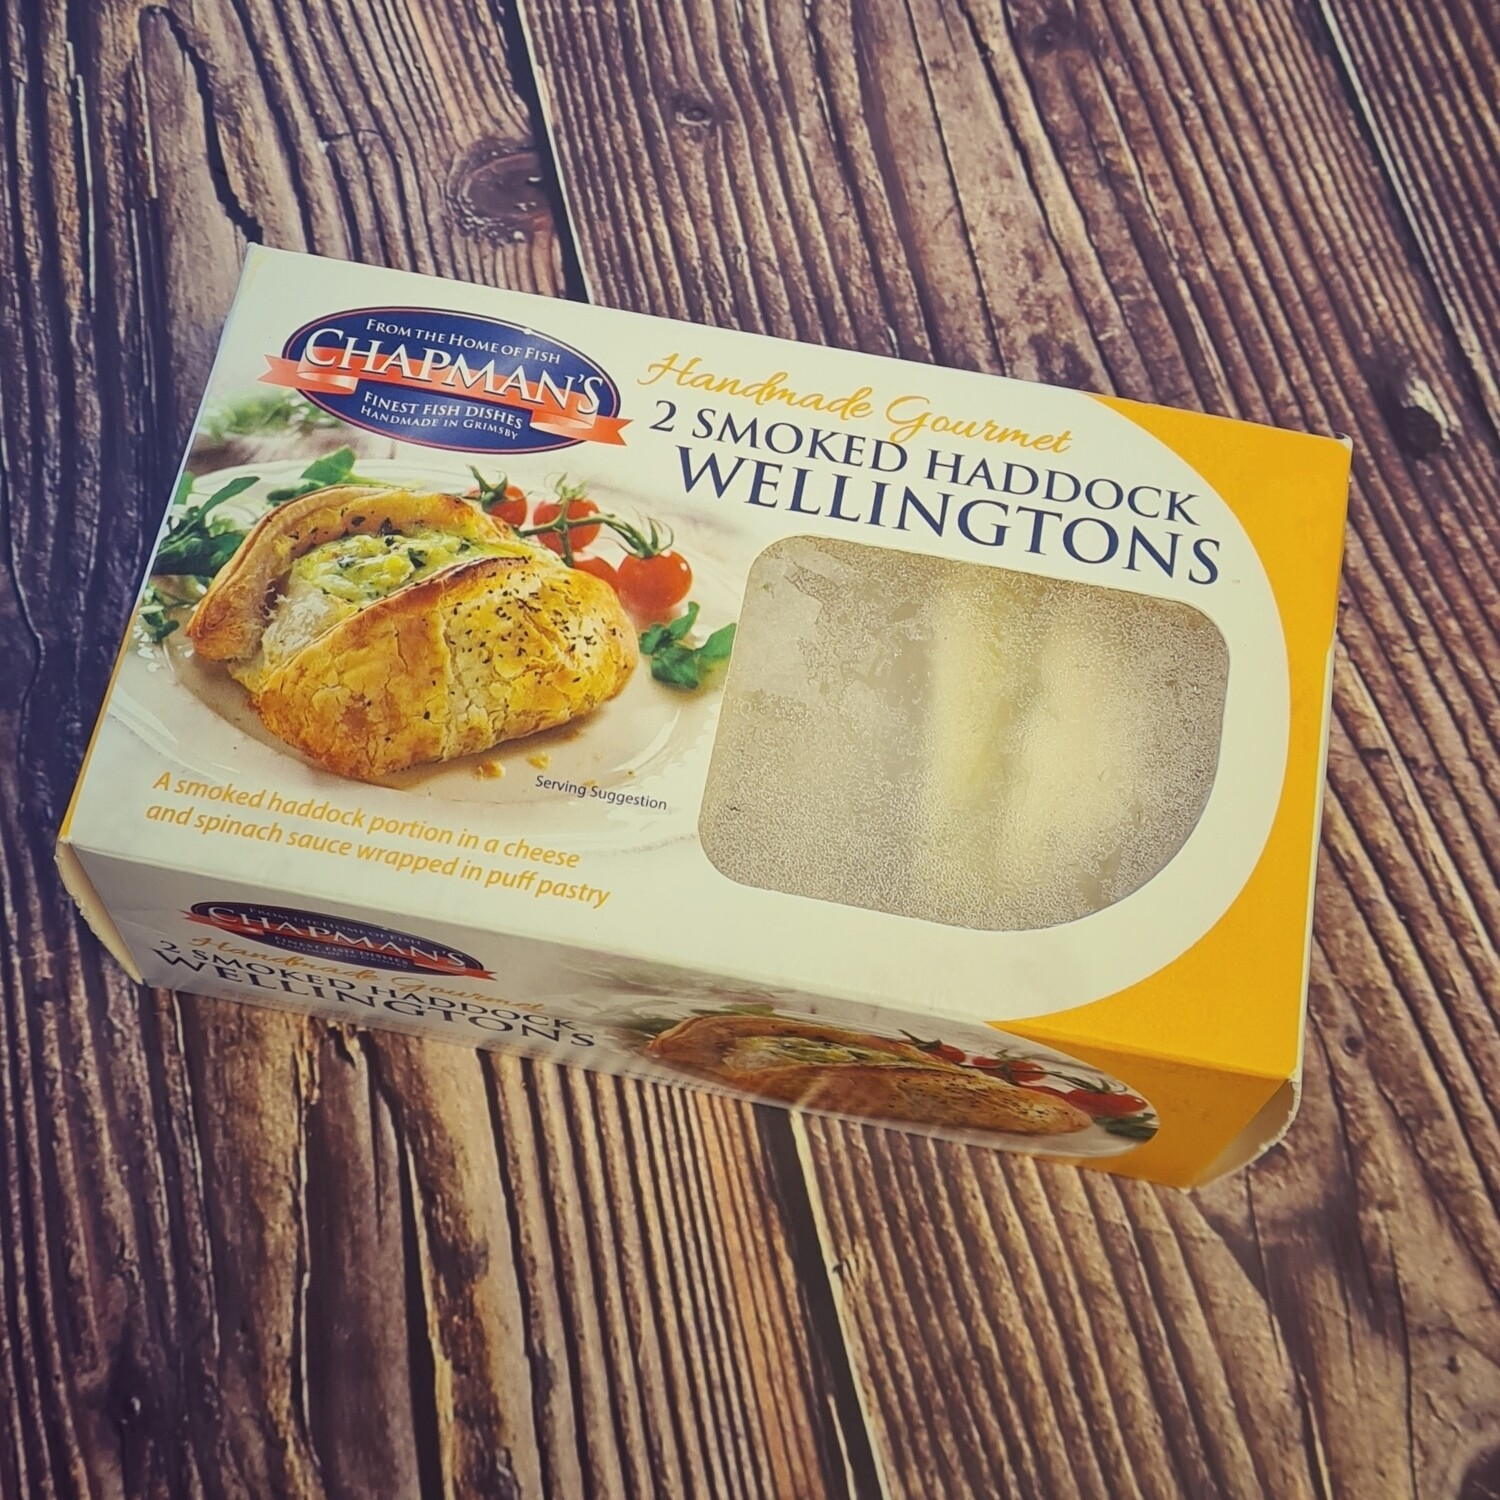 Smoked Haddock Wellingtons